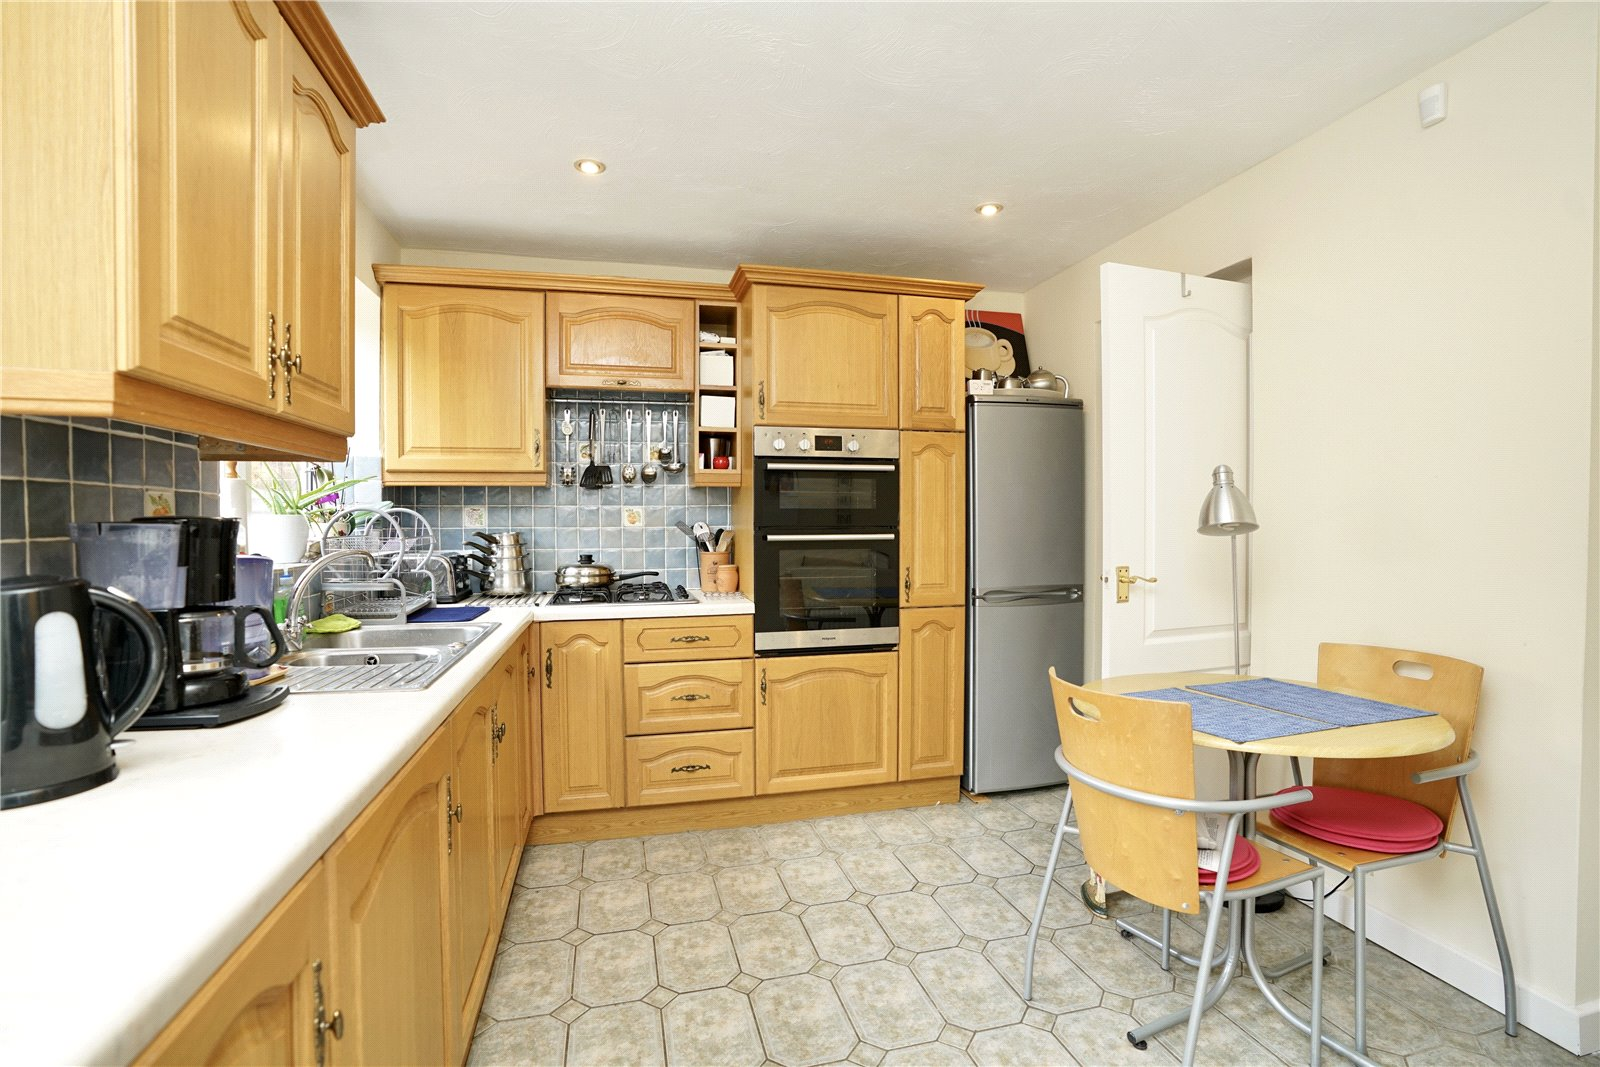 3 bed house for sale in Cunningham Way, Eaton Socon 2